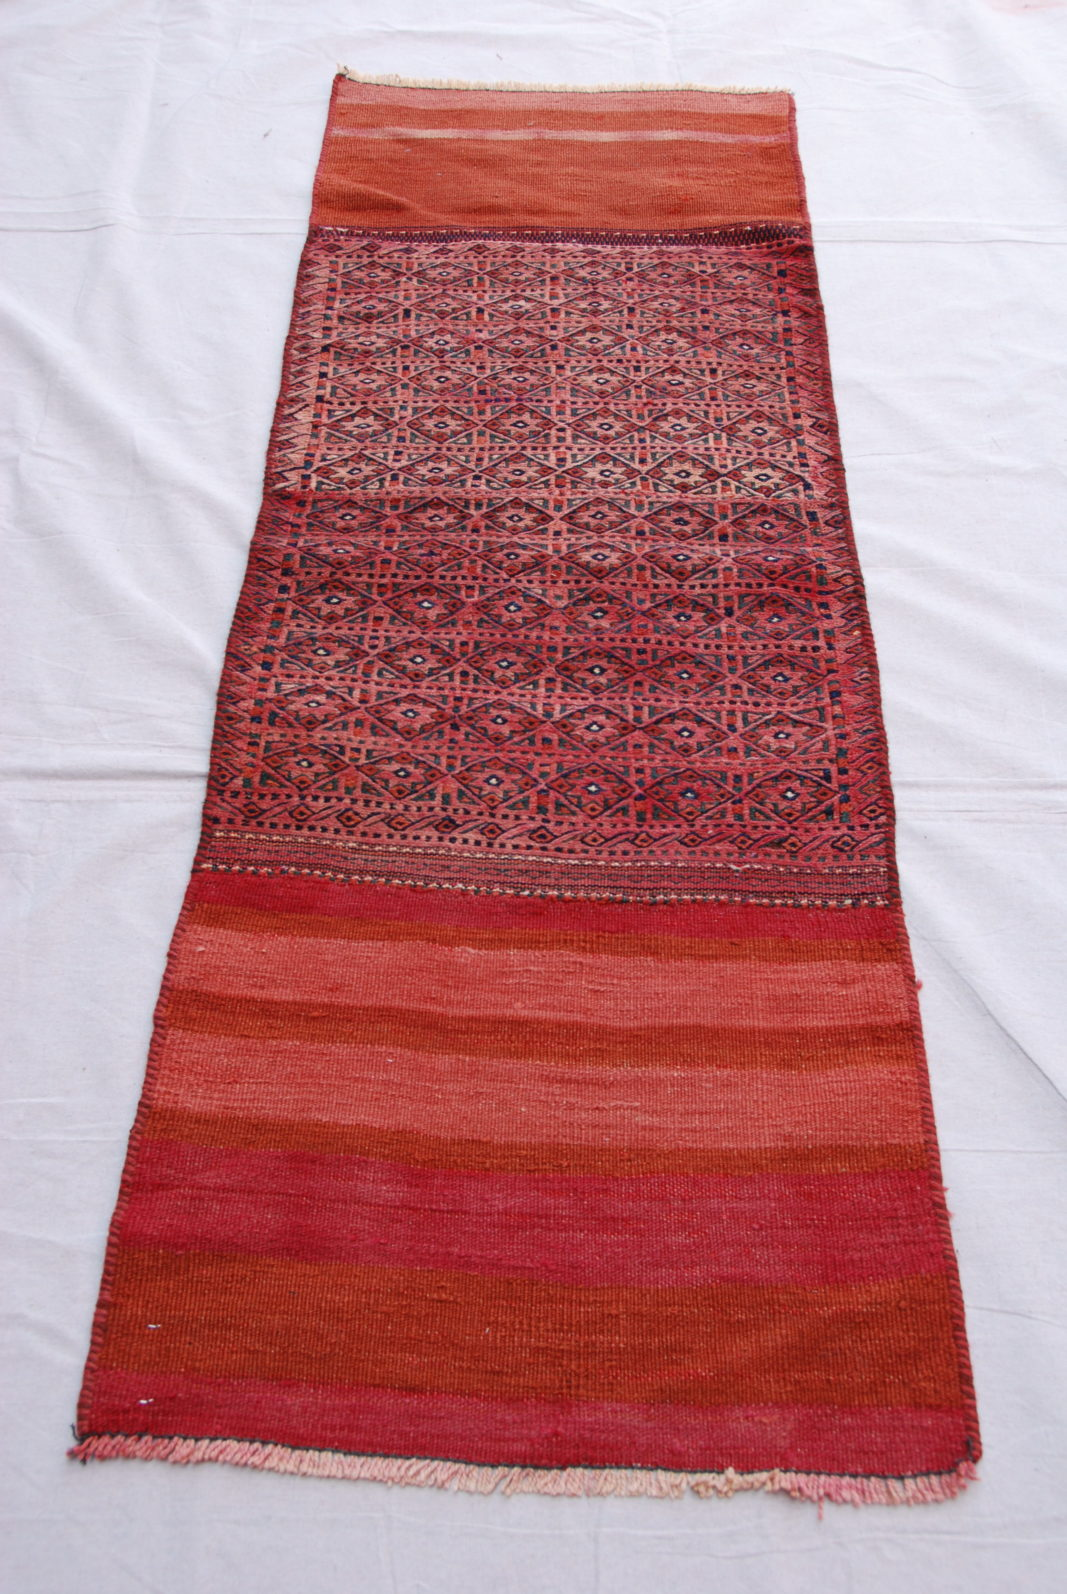 Hand knotted and woven wool on wool North Iranian Besich runner 50-60 years old 1.78 x 0.62 $575